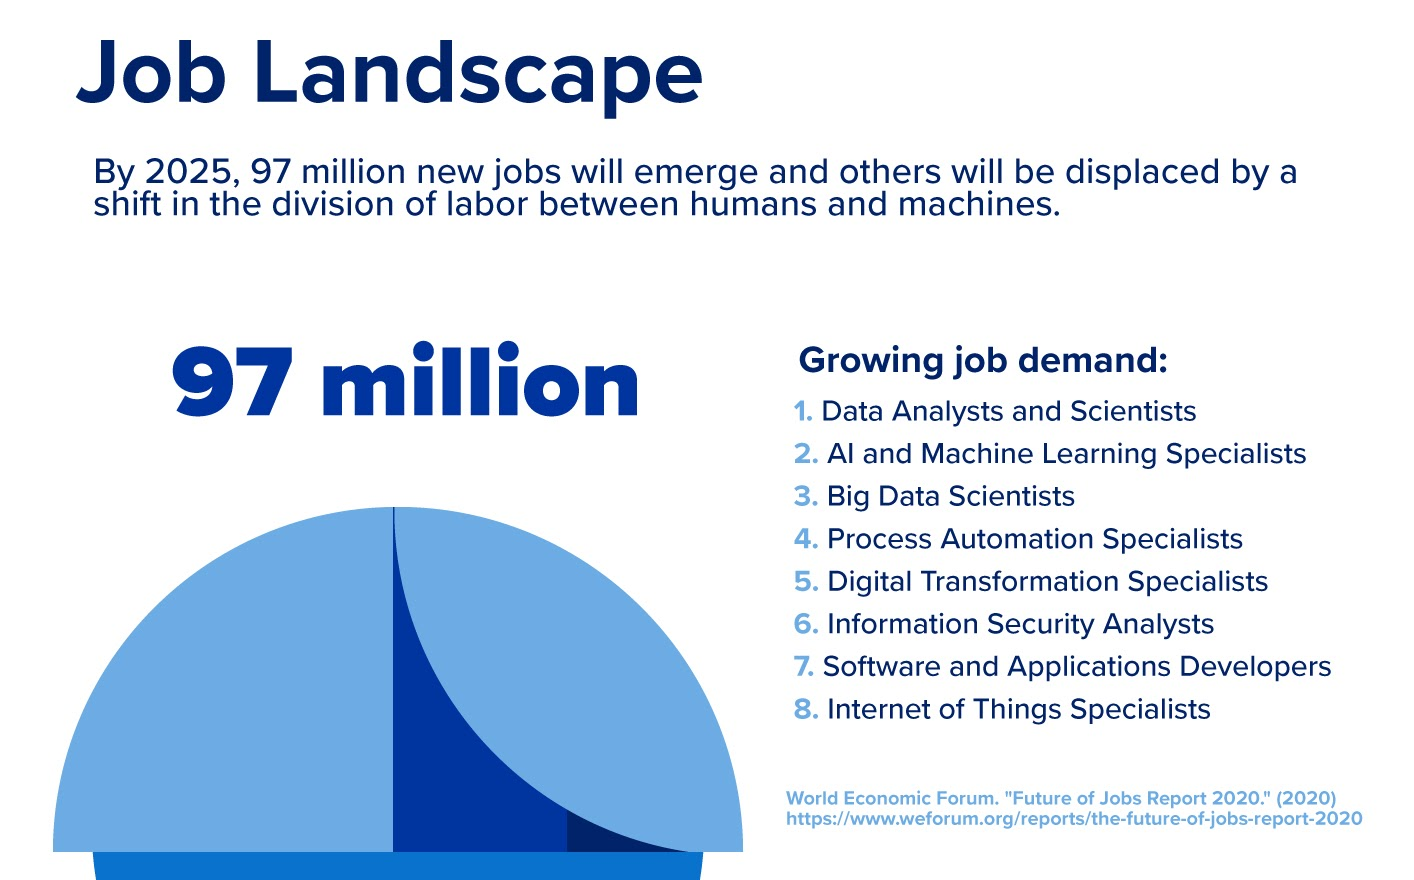 Graphic detailing the job landscape in data analytics